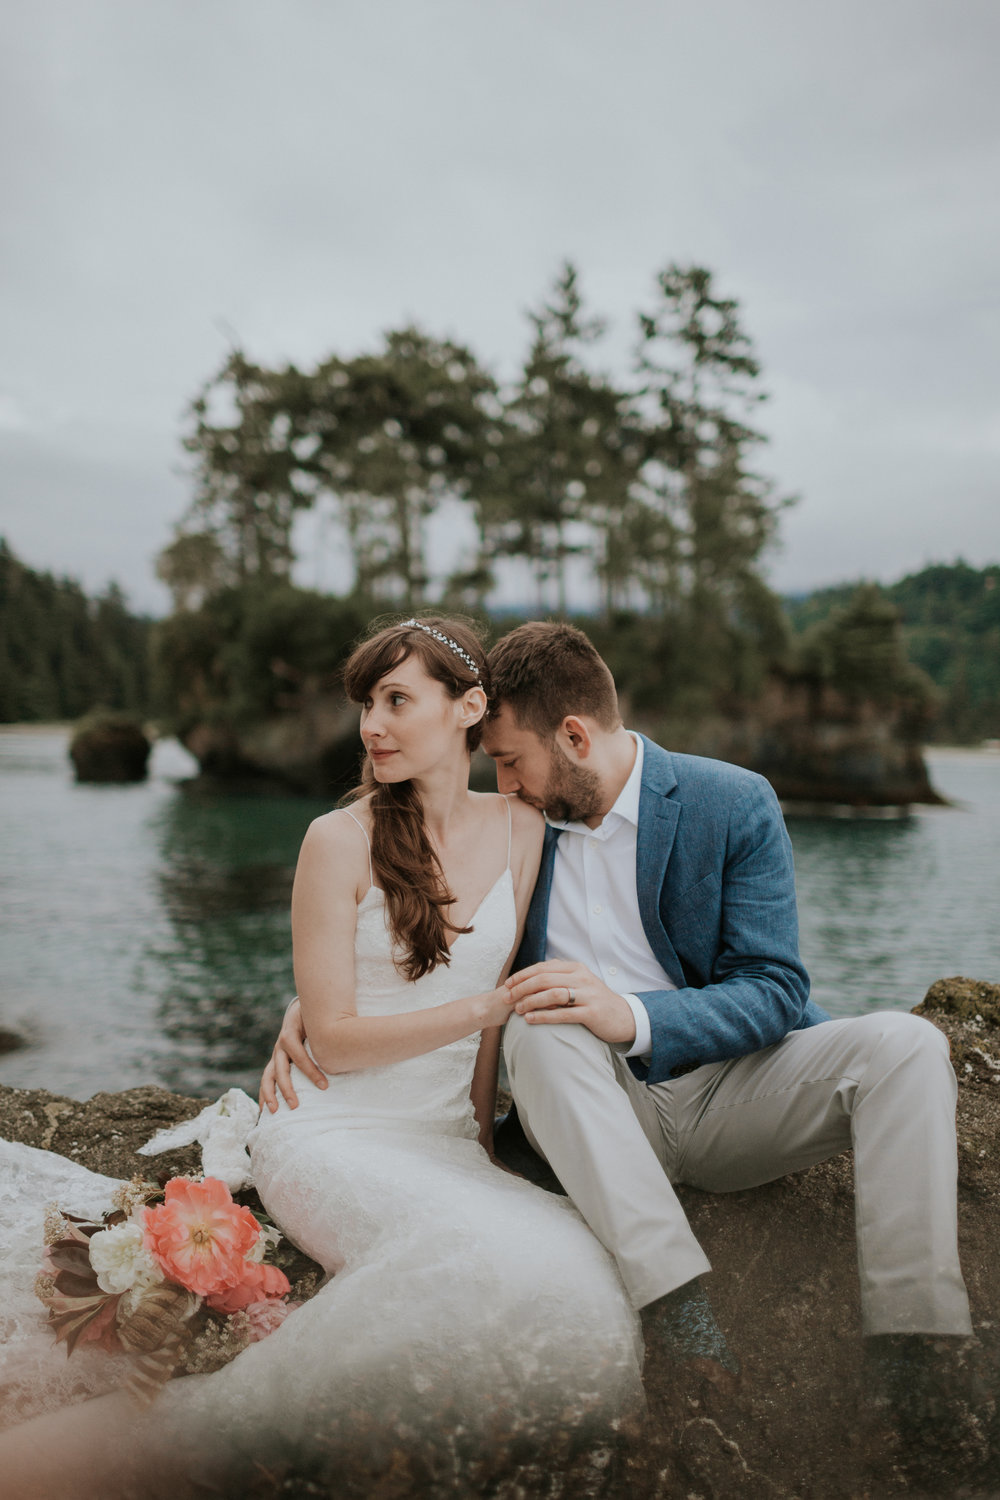 PNW-elopement-wedding-engagement-olympic national park-port angeles-hurricane ridge-lake crescent-kayla dawn photography- photographer-photography-kayladawnphoto-320.jpg